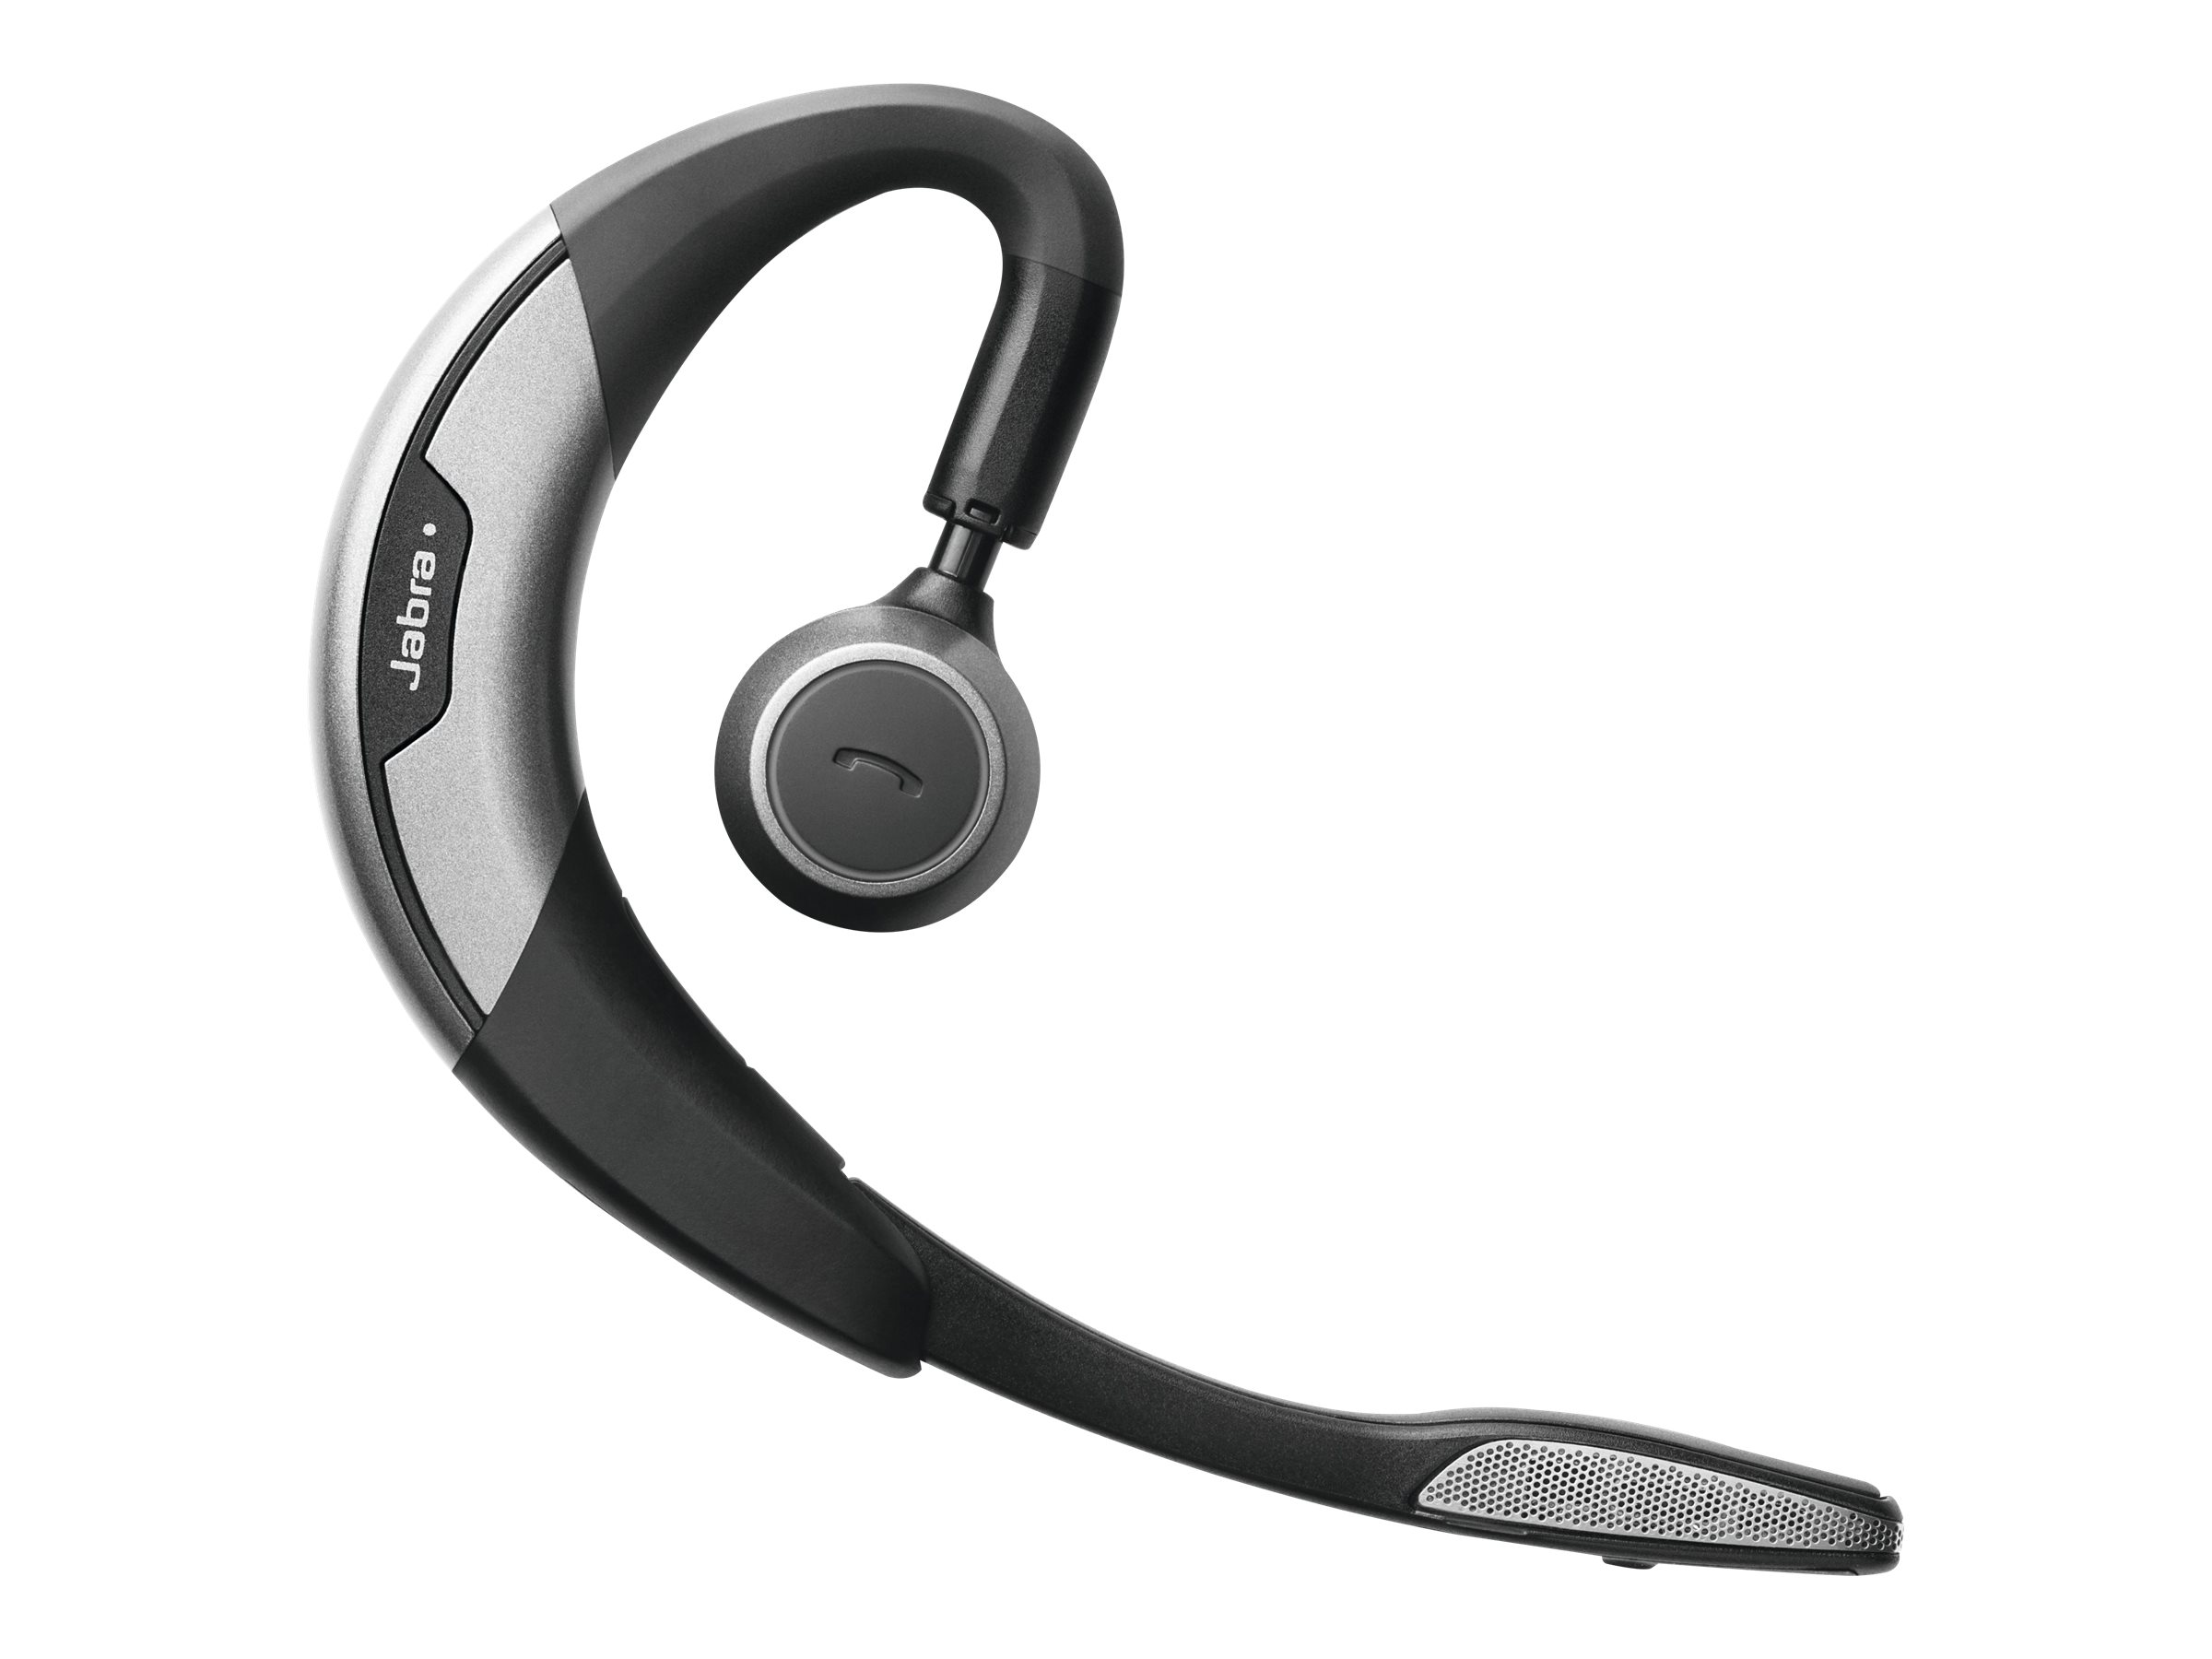 Image for Jabra Motion Uc With Travel & Charge Kit - Headset from Circuit City